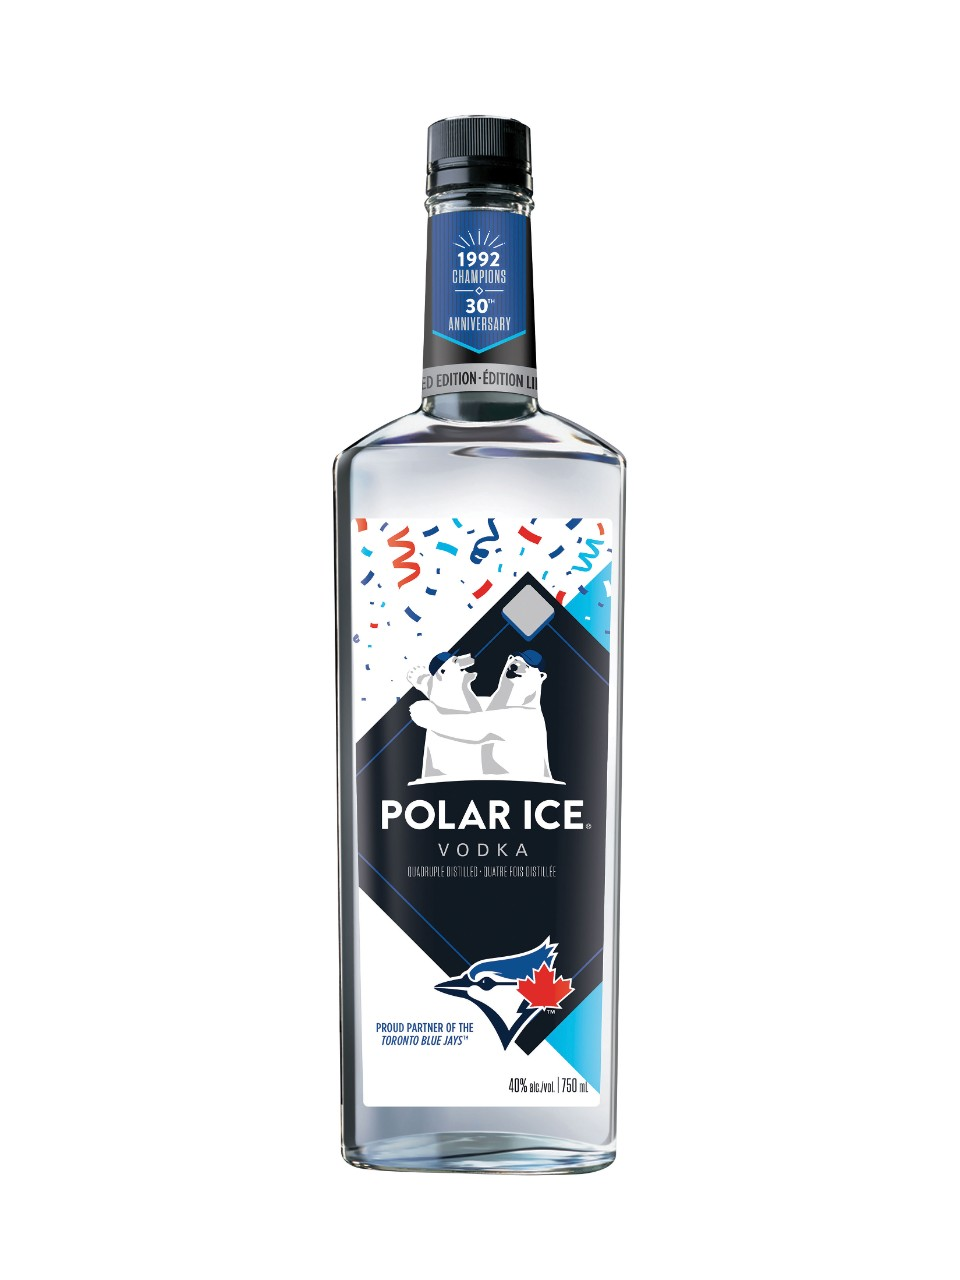 Polar Ice Vodka from LCBO